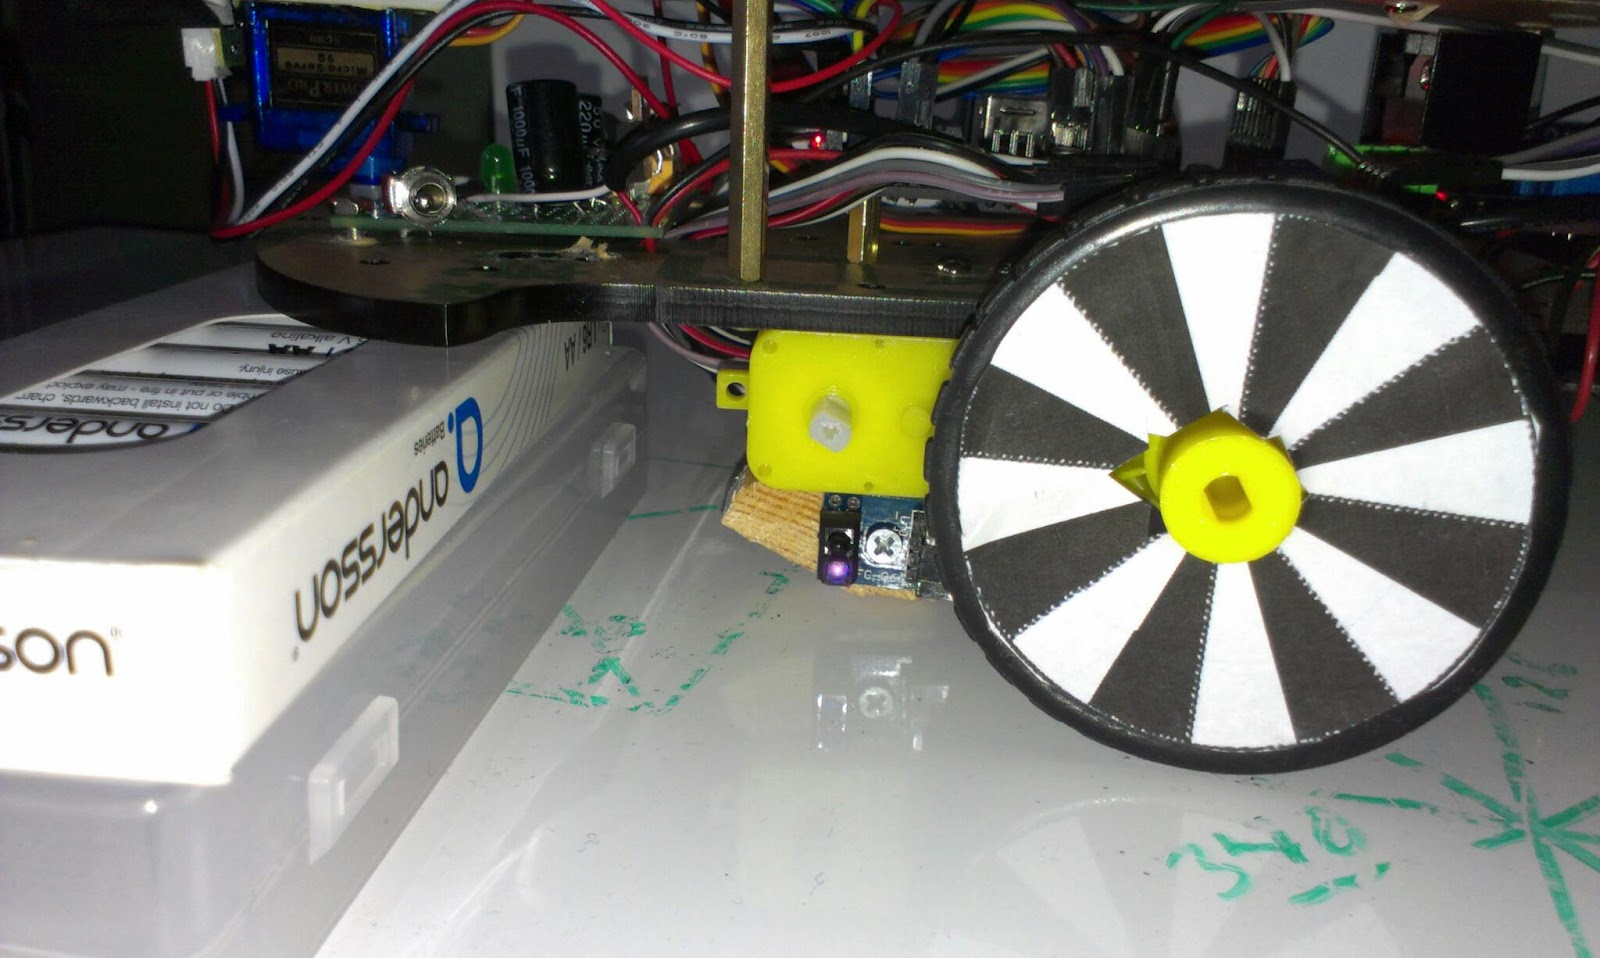 The transparent robot odometry sensor